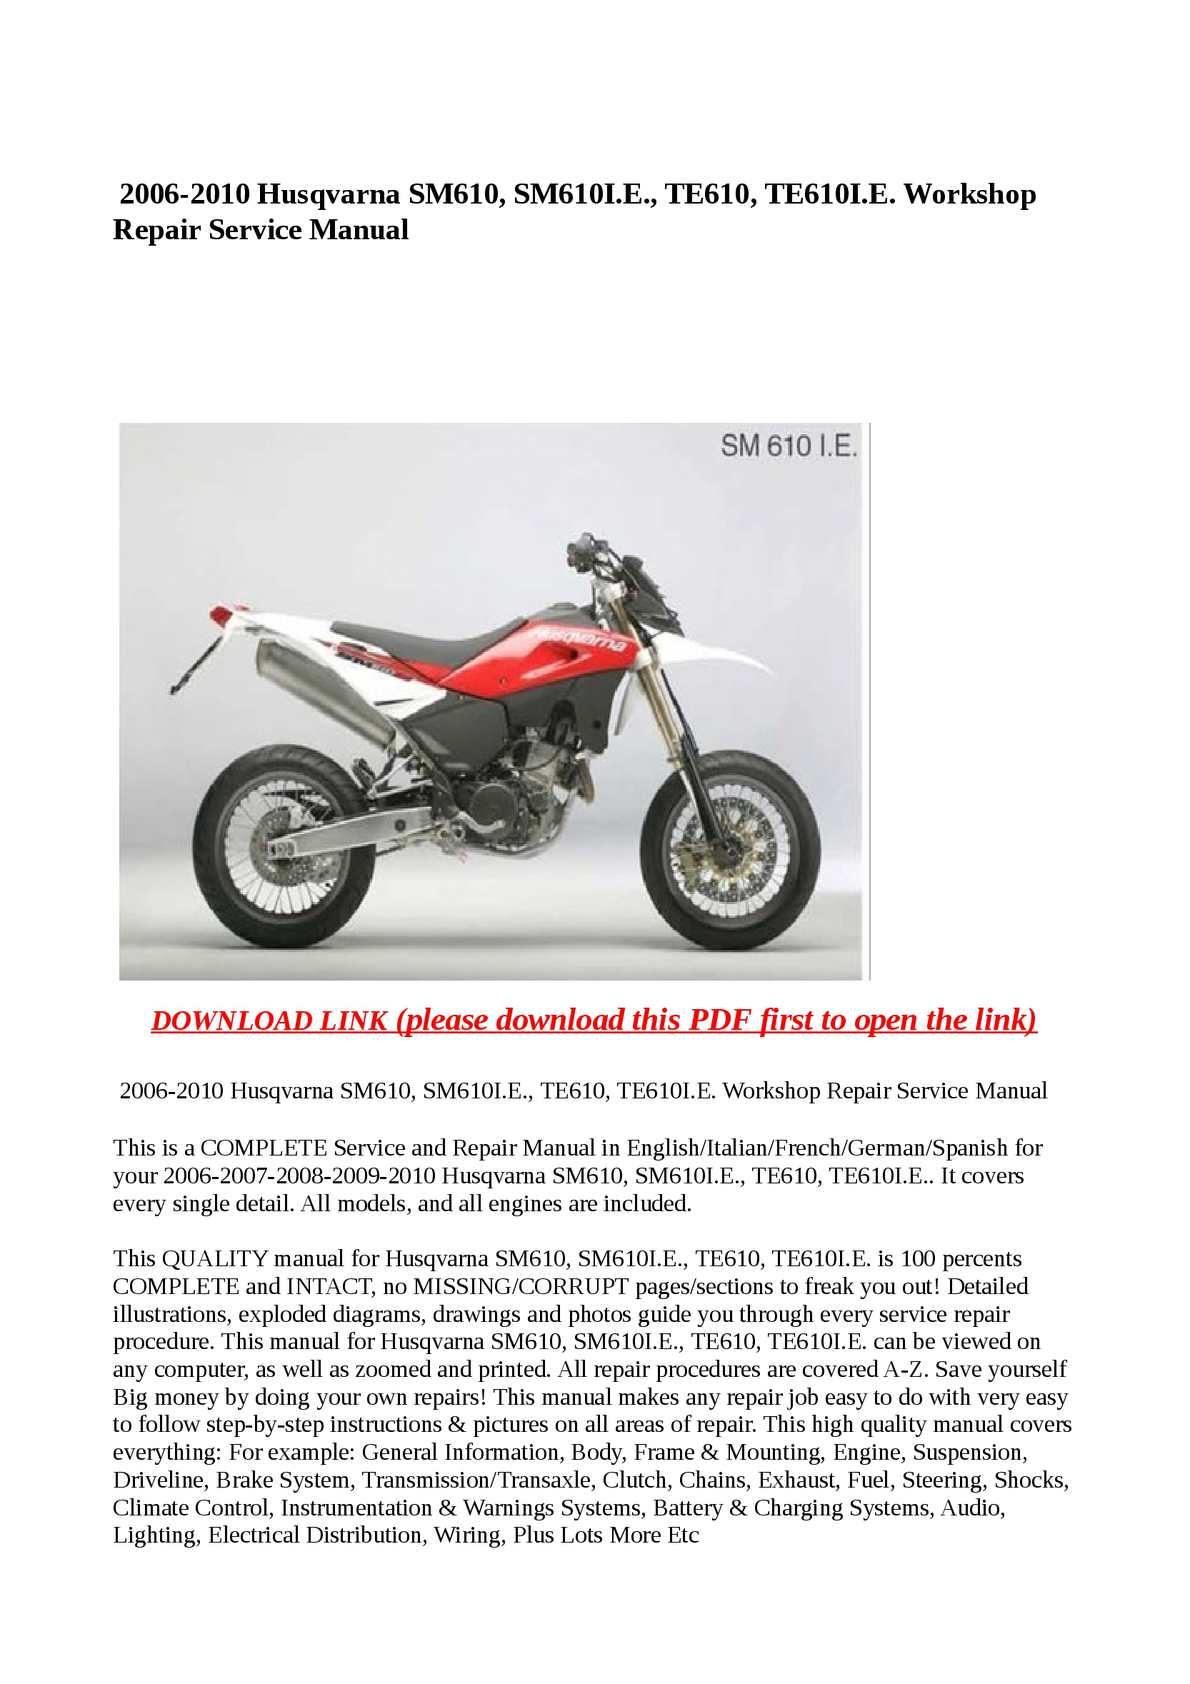 husqvarna sm610 te610ie motorcycle service repair manual 2008 english italian frech spanish german